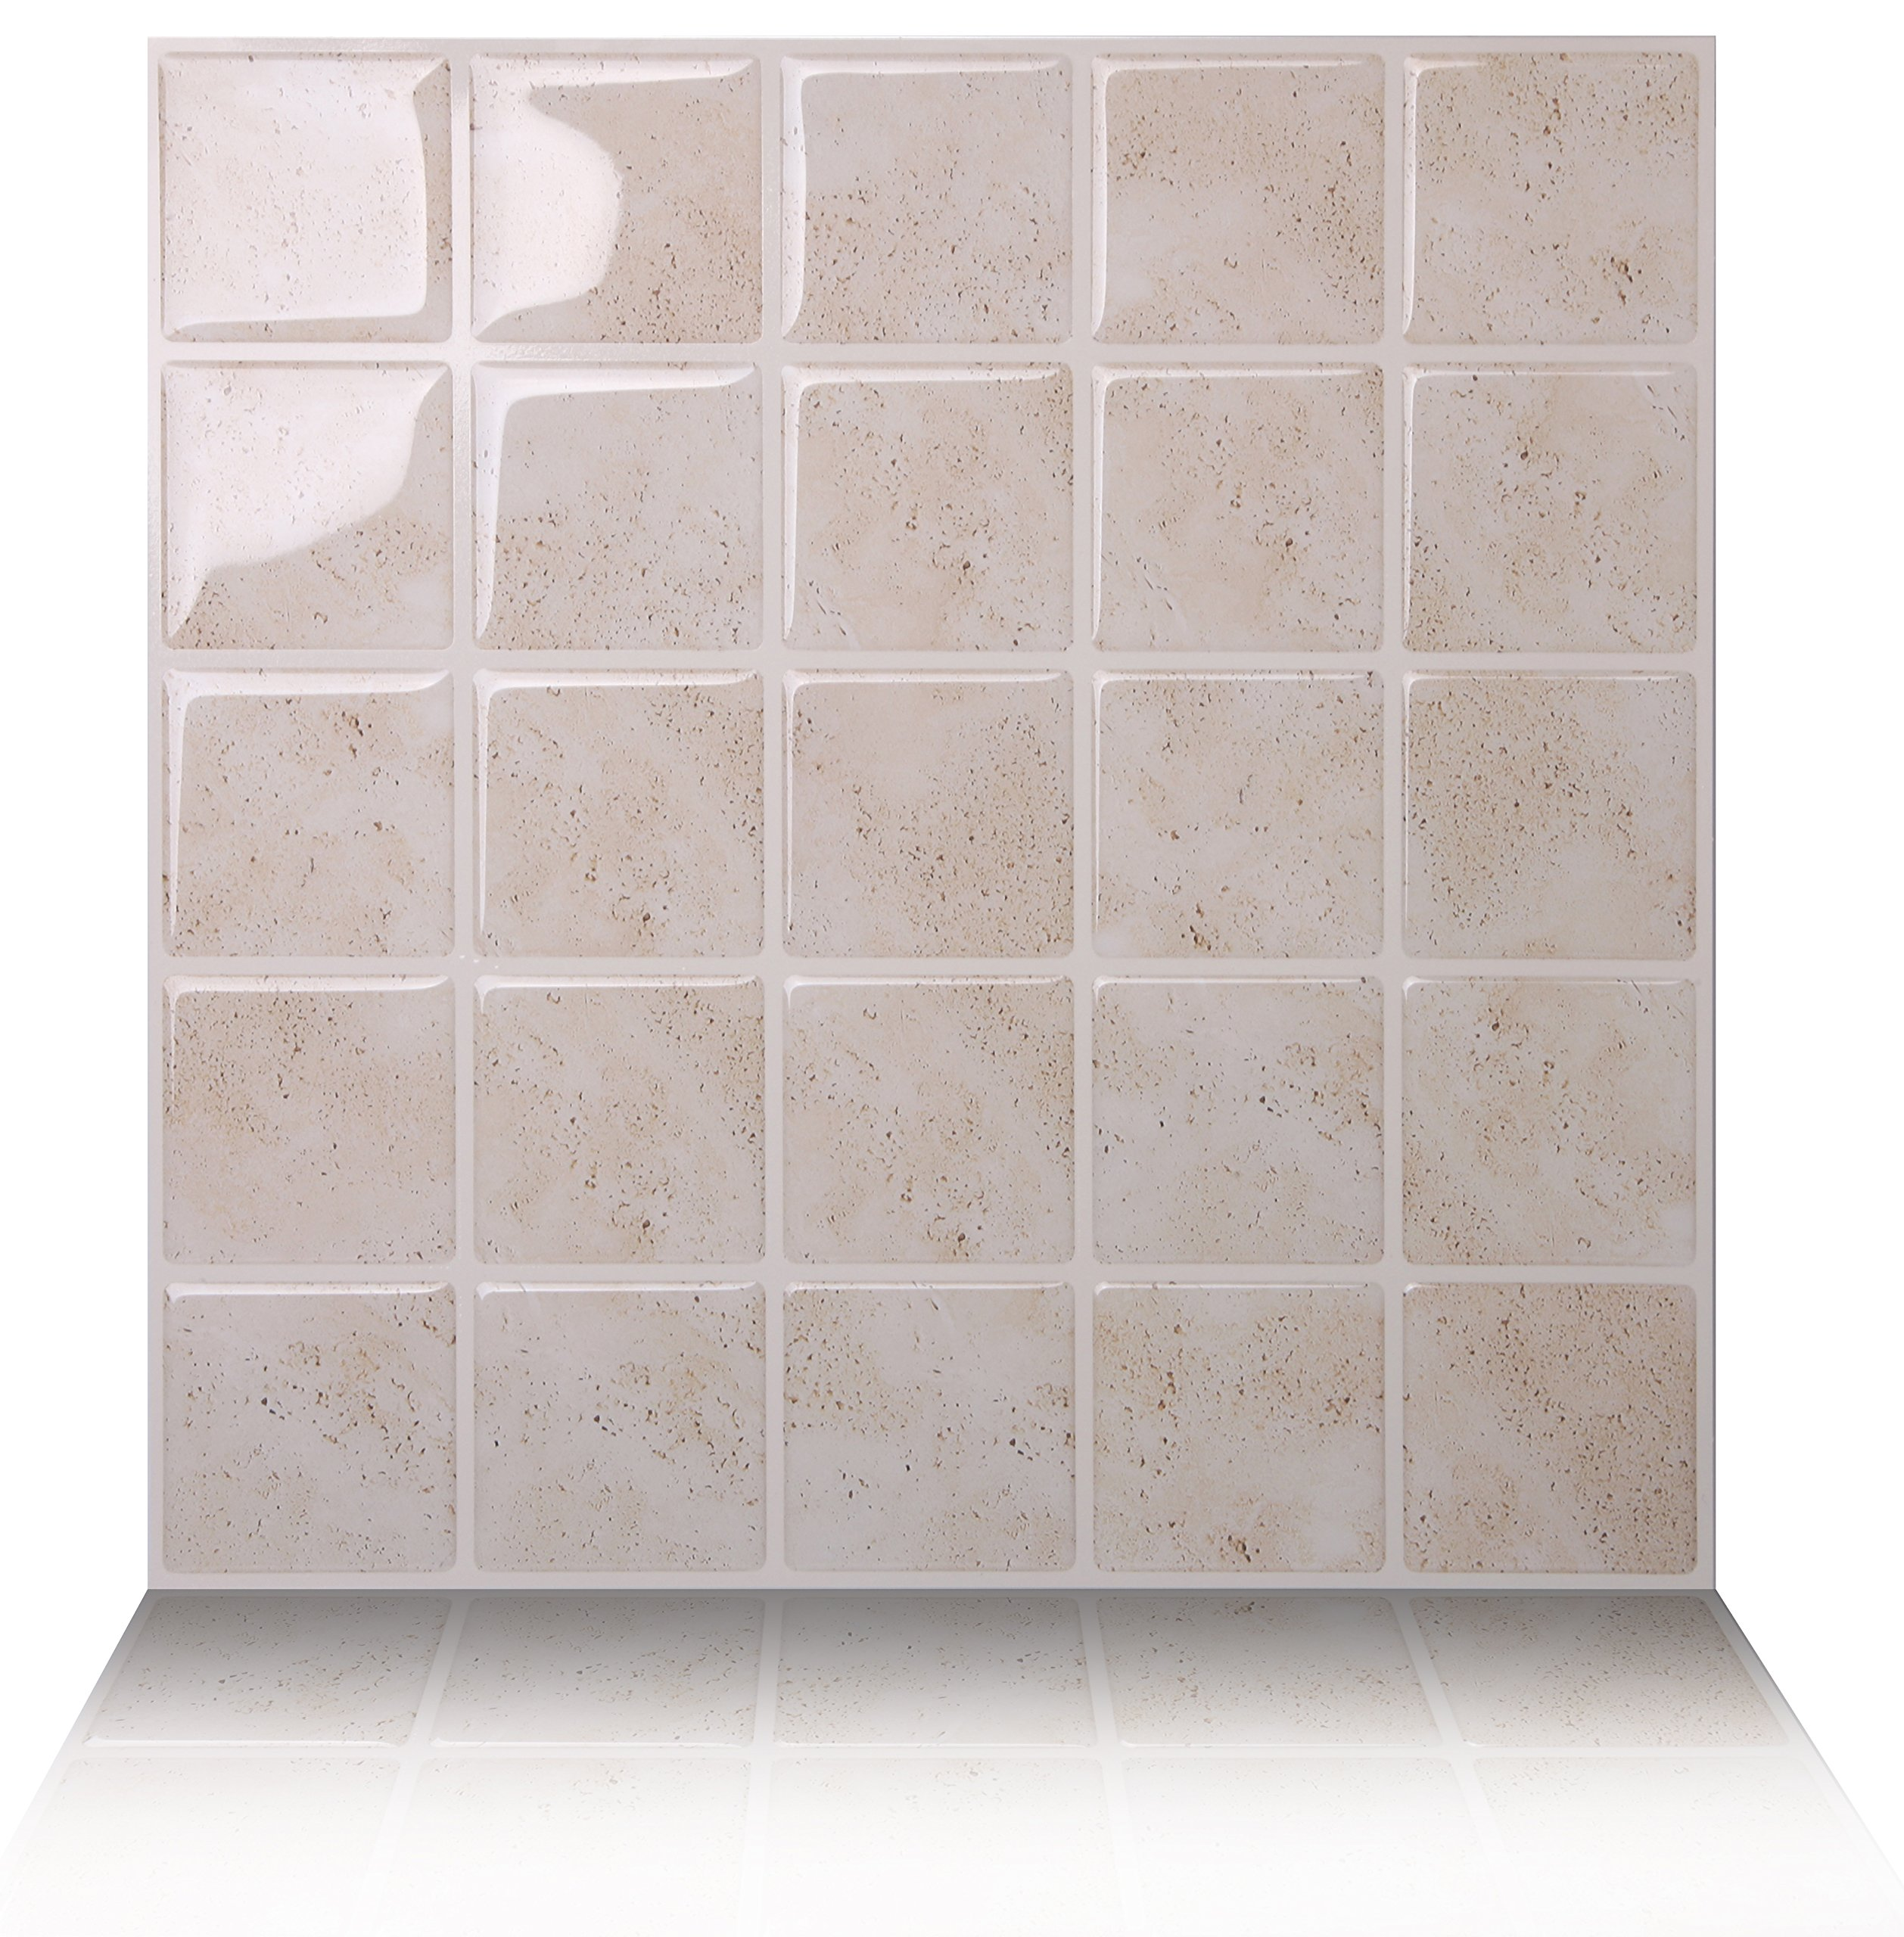 Tic Tac Tiles 5-Sheet Peel and Stick Self Adhesive Removable Stick On Kitchen Backsplash Bathroom 3D Wall Sticker Wallpaper Tiles in Marmo Travertine by Tic Tac Tiles